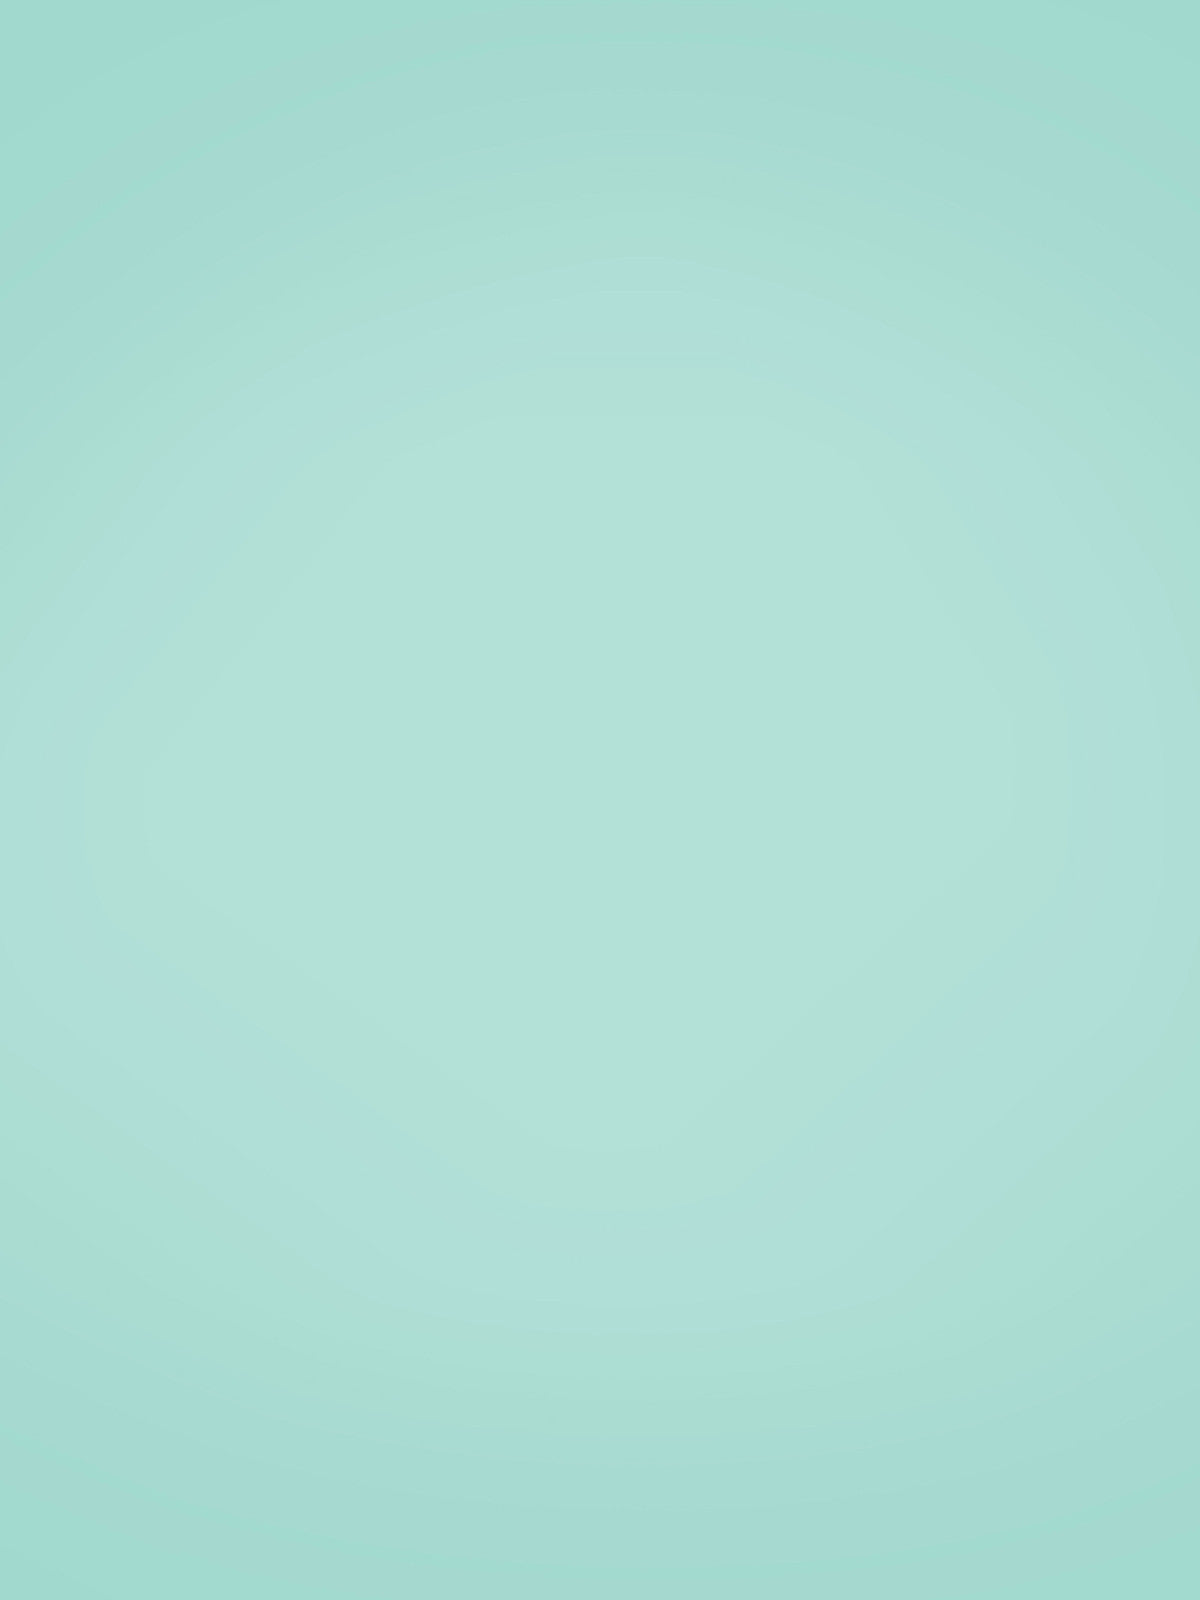 Teal Solid Printed Photo Backdrop / 9104